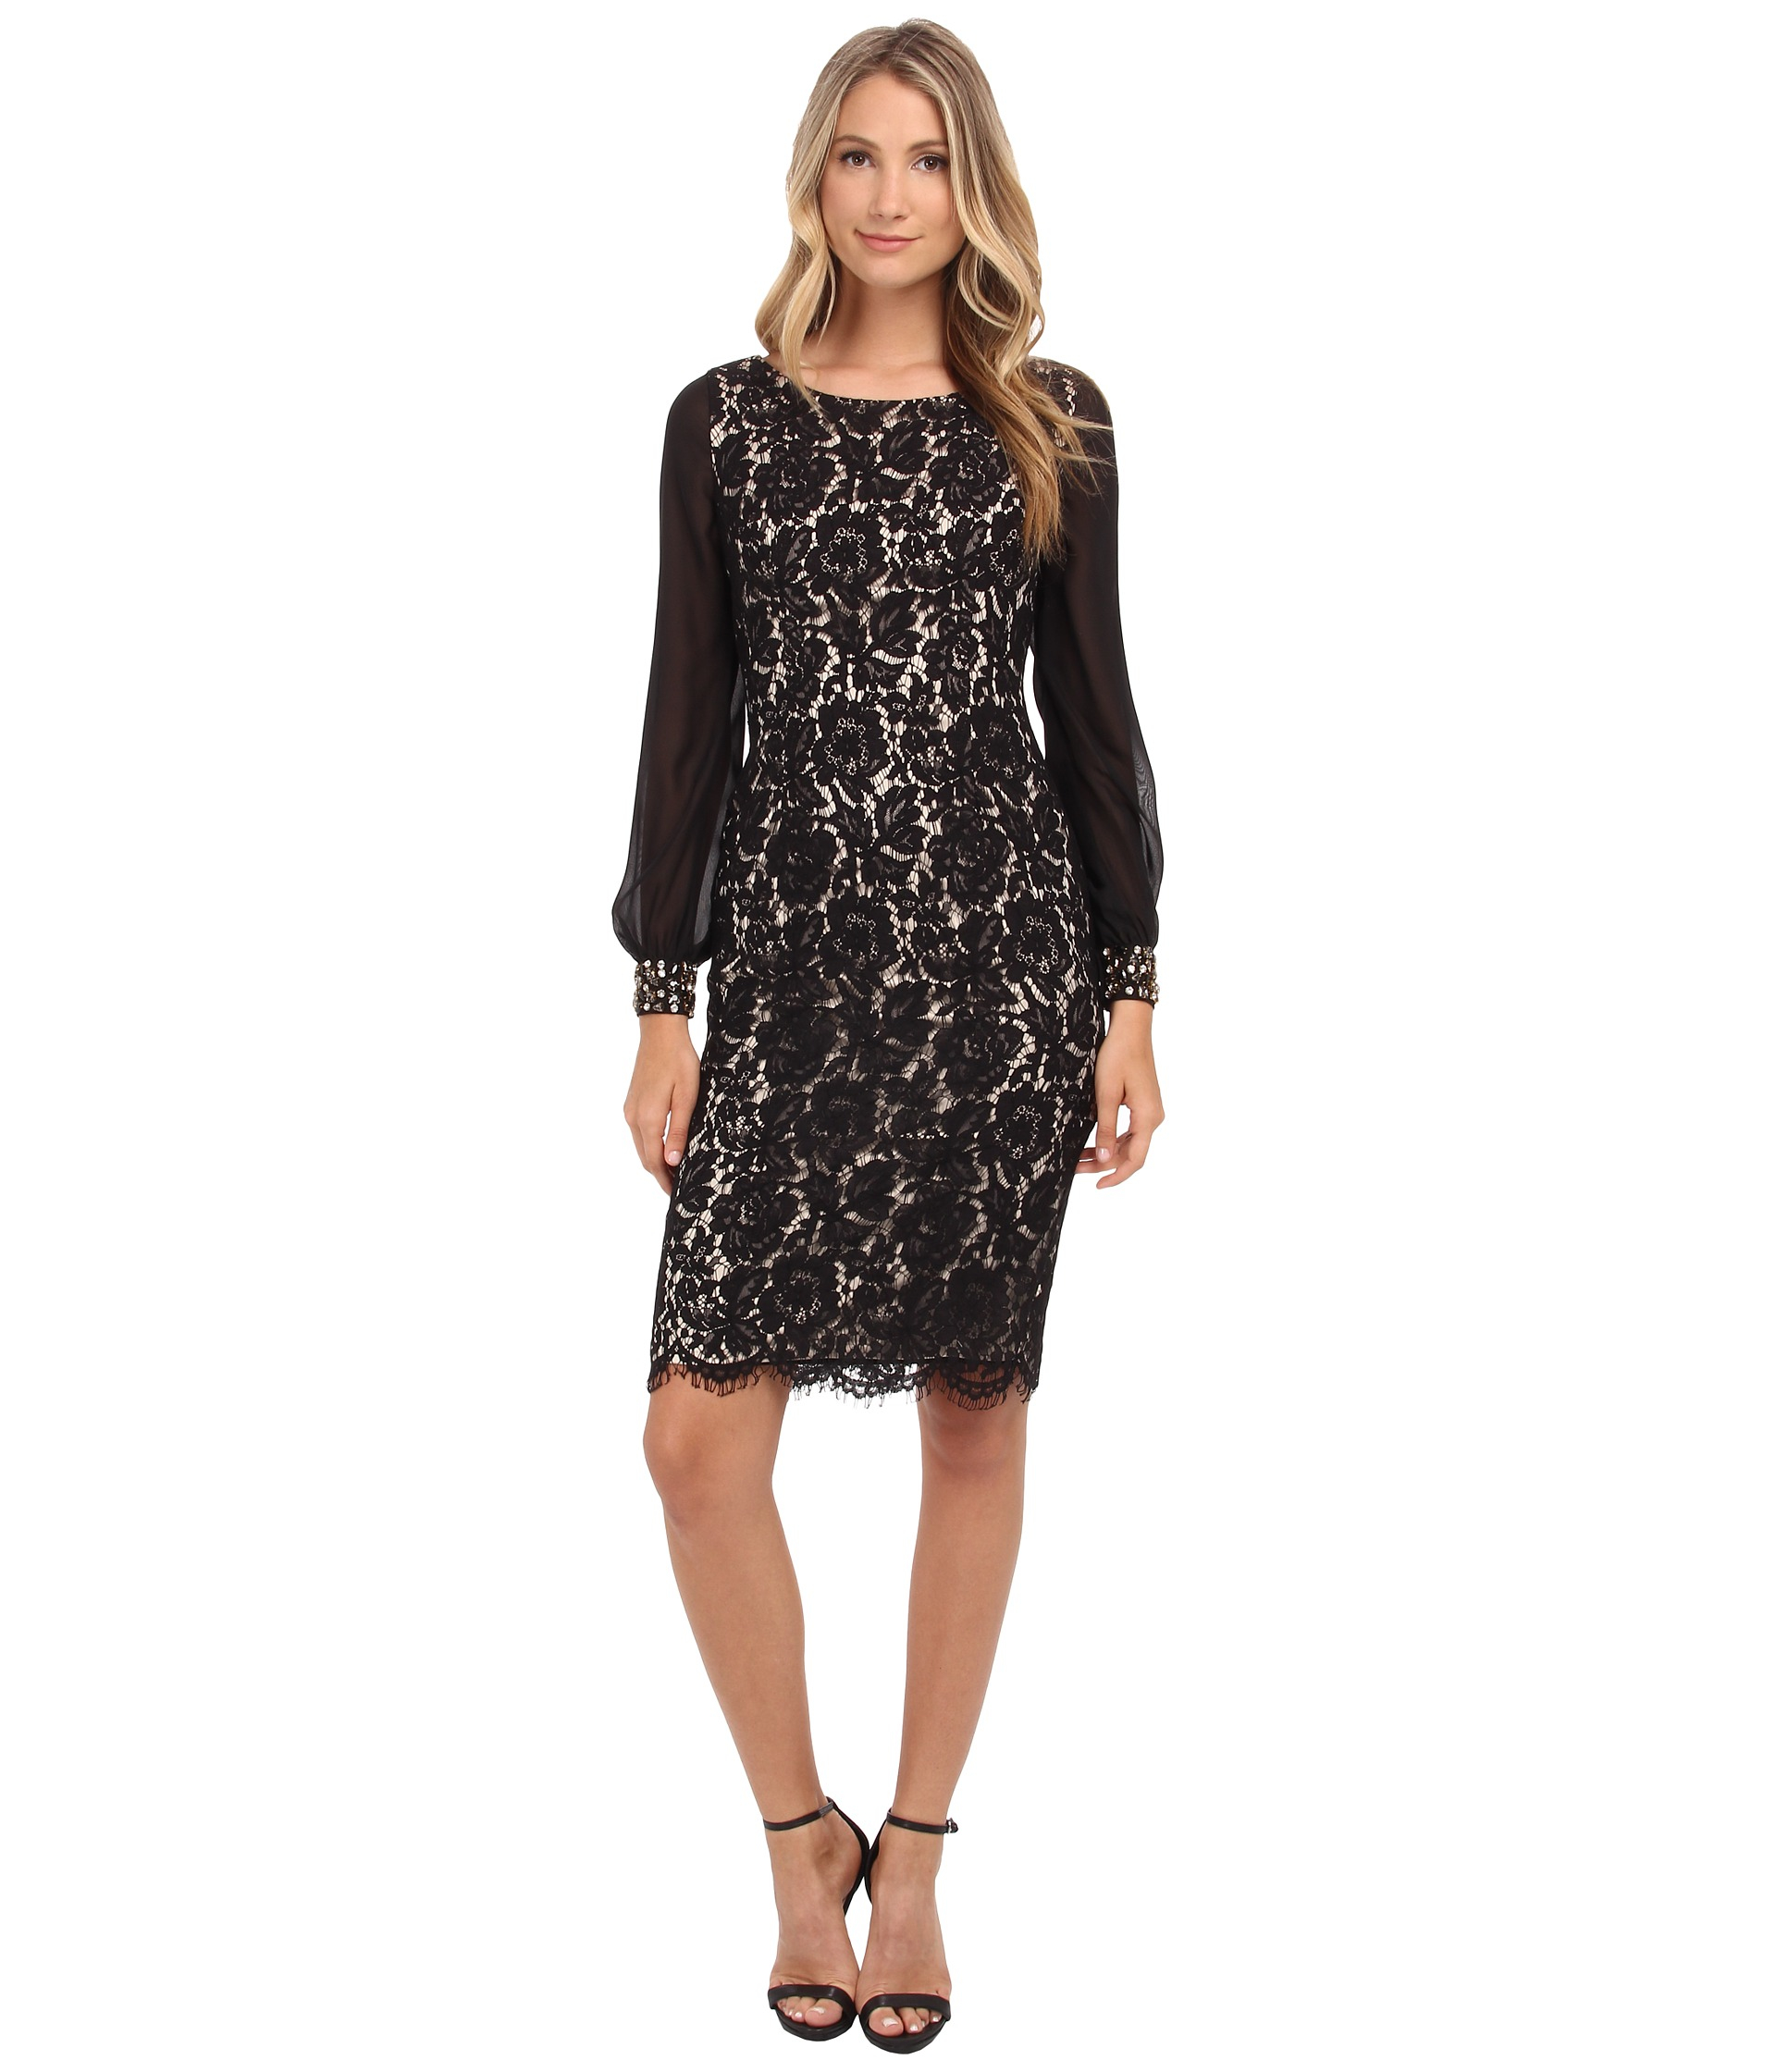 a11f130a Eliza J Lace Sheath Dress With Chiffon Bell Sleeves in Black - Lyst